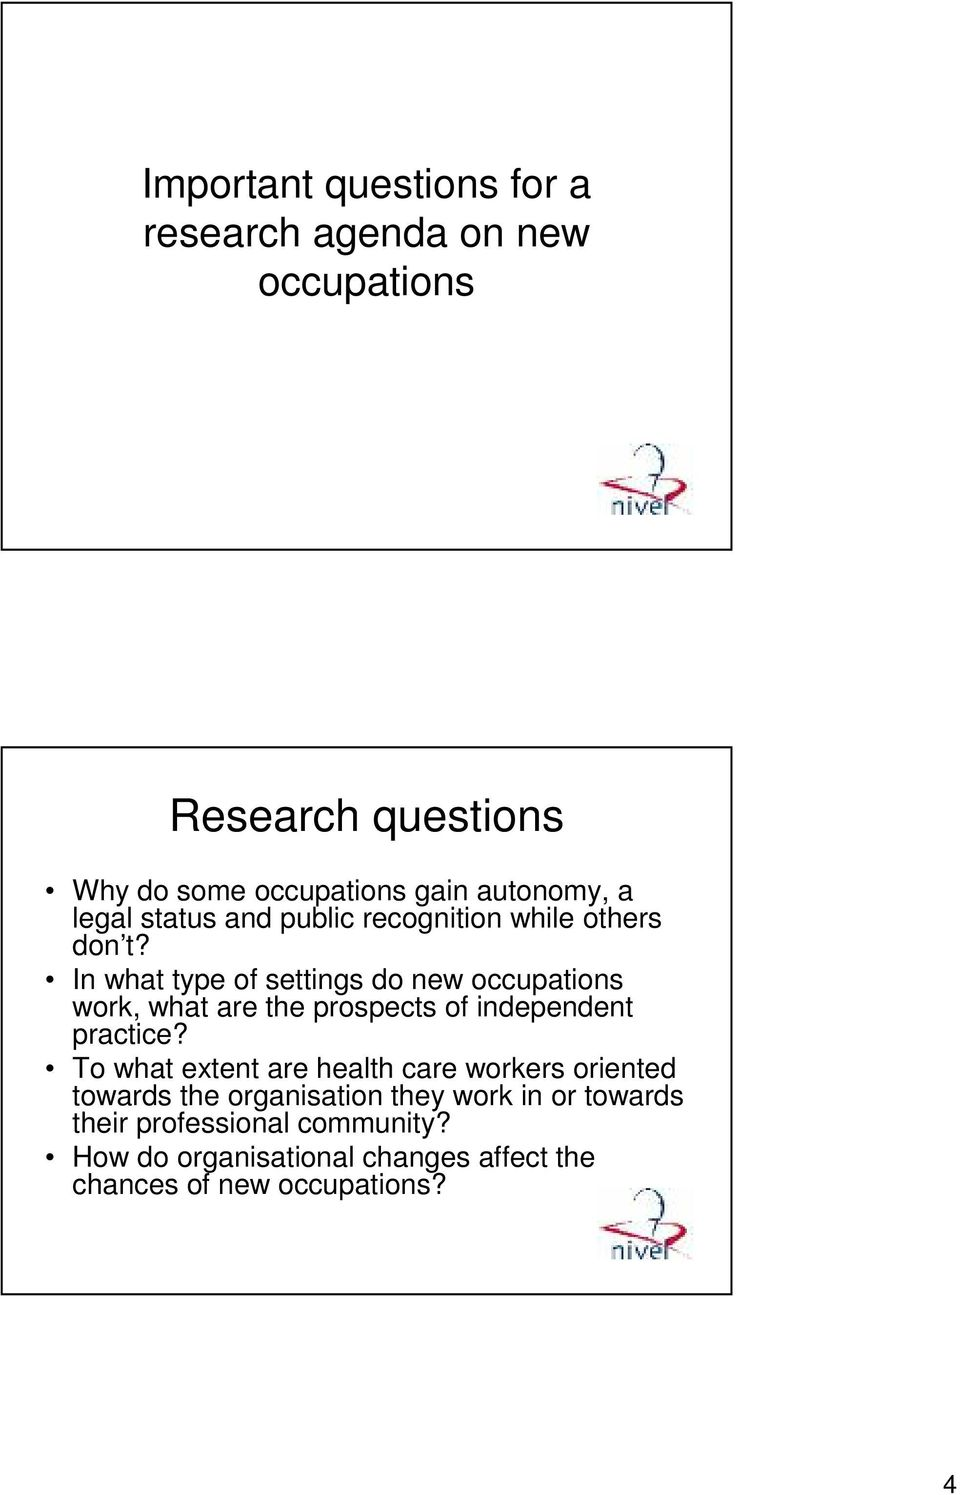 In what type of settings do new occupations work, what are the prospects of independent practice?